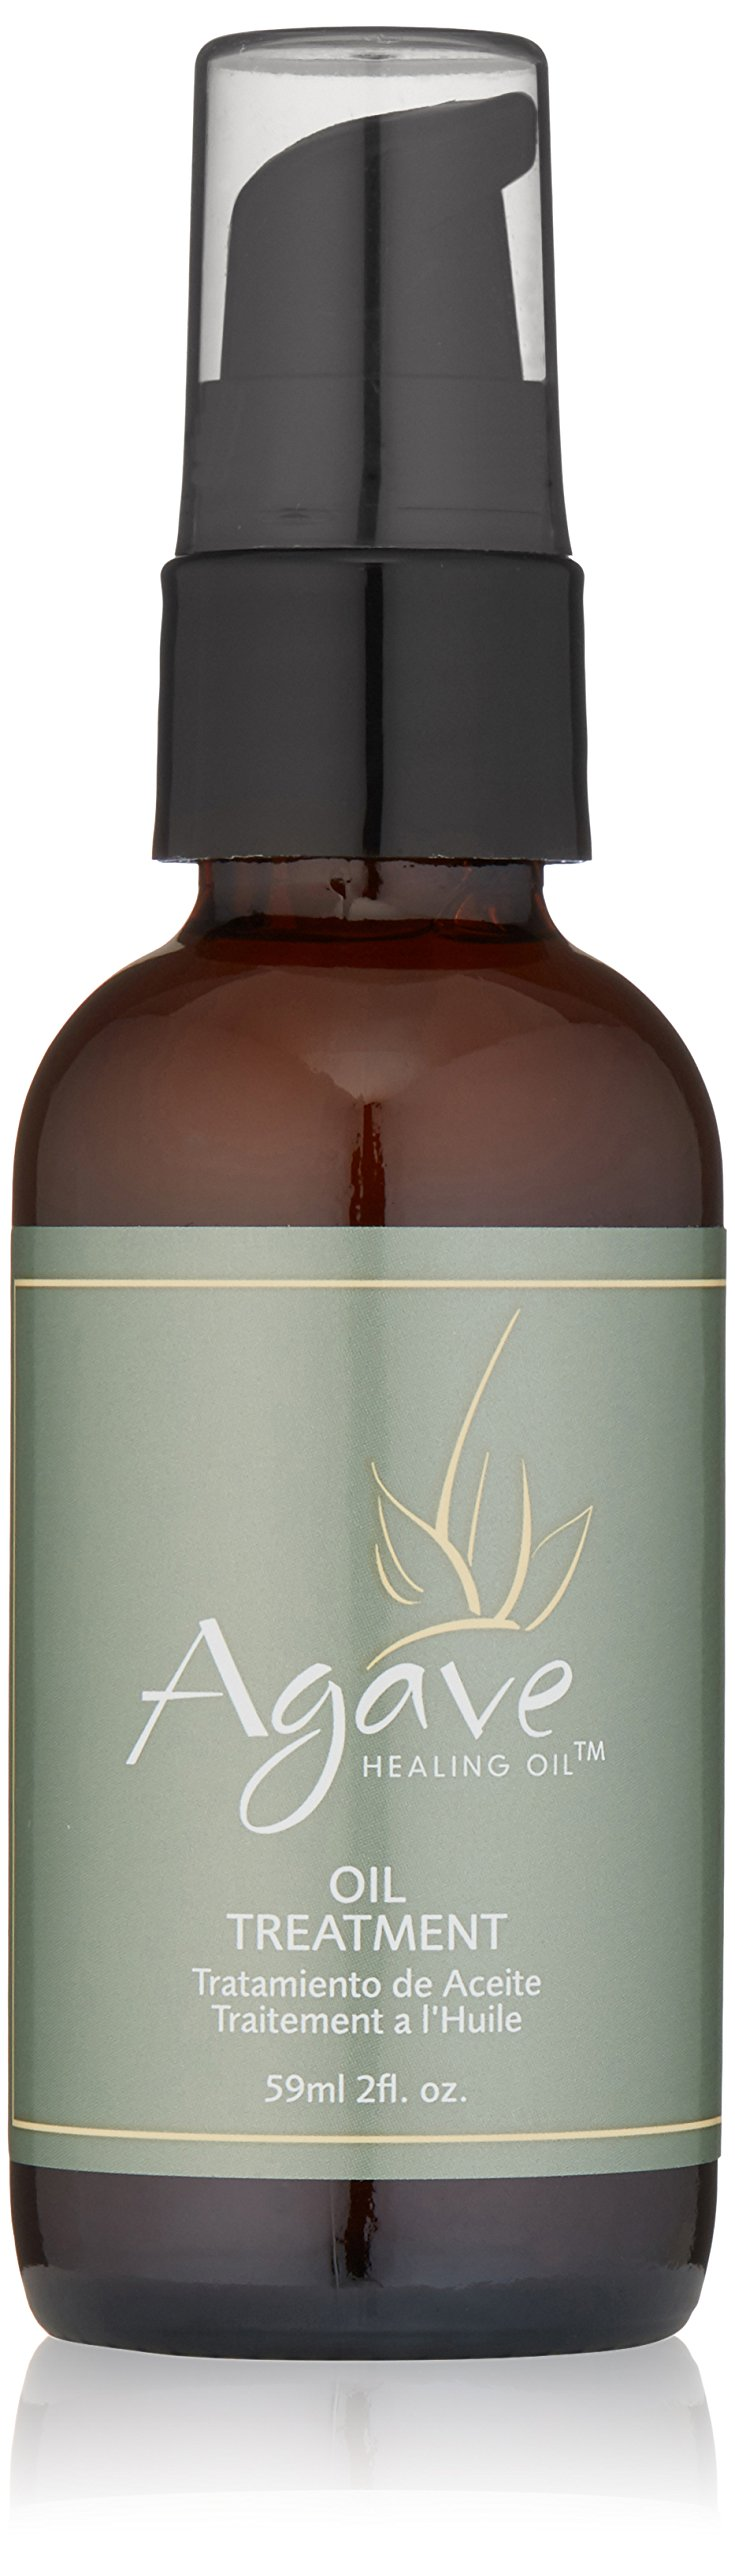 Agave Healing Oil - Oil Treatment. Hydrating Lightweight Hair Oil that Smooths, Moisturizes and Adds Shine to All Hair Types. Sulfate Free, Paraben Free, Phthalate Free and Cruelty Free (2 fl.oz)